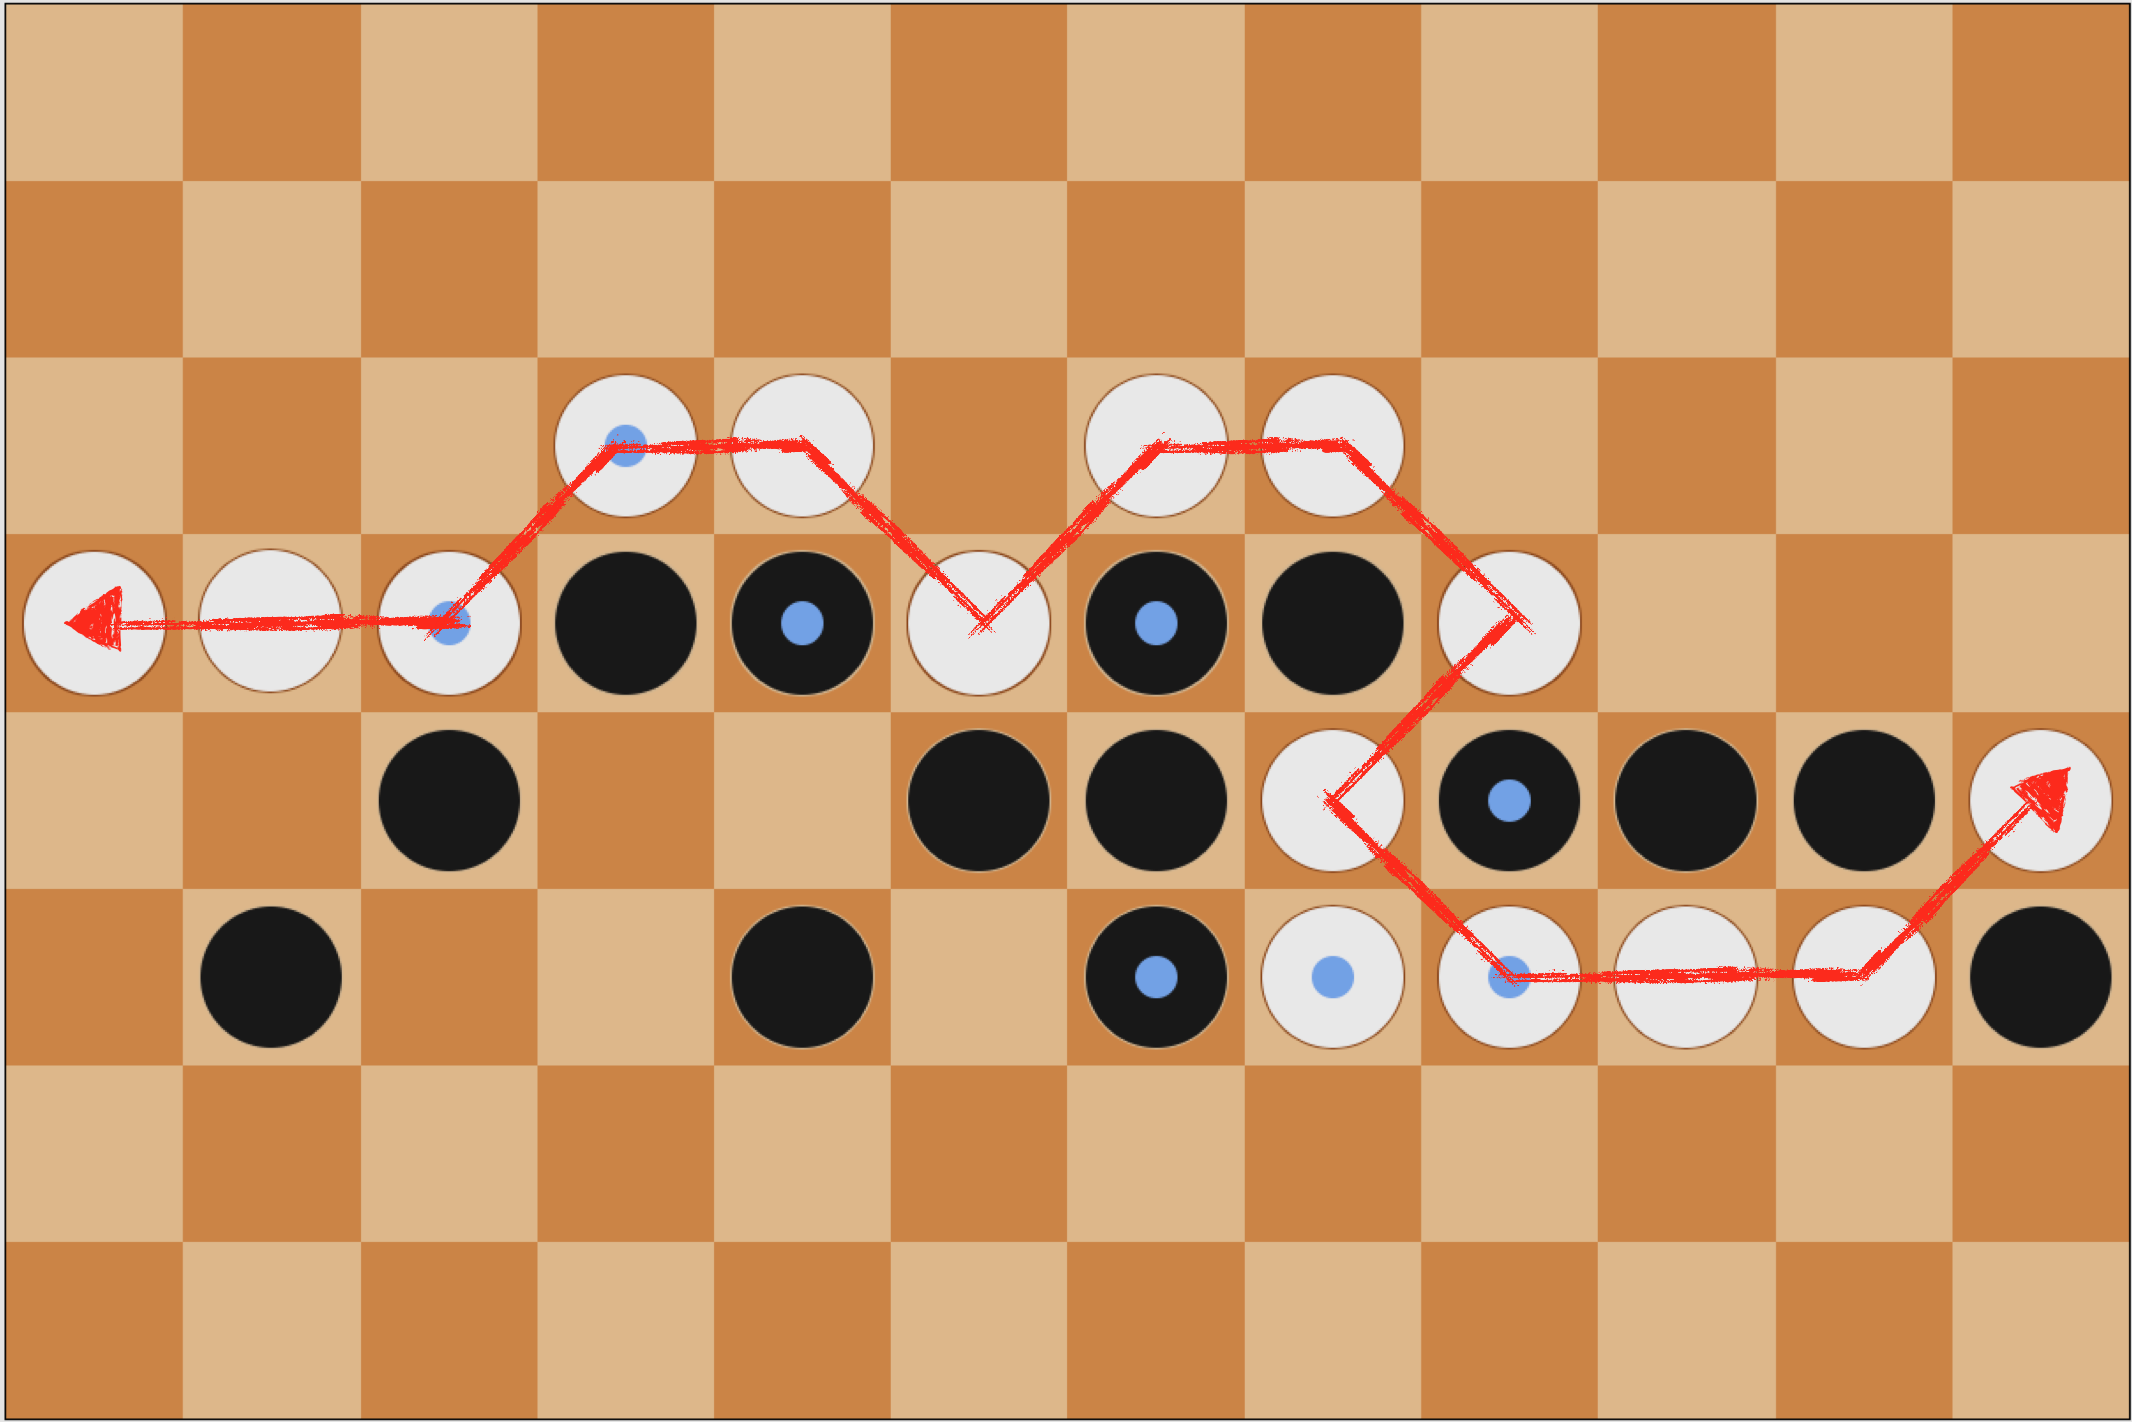 Building an AI that Can Beat You at Your Own Game - Towards